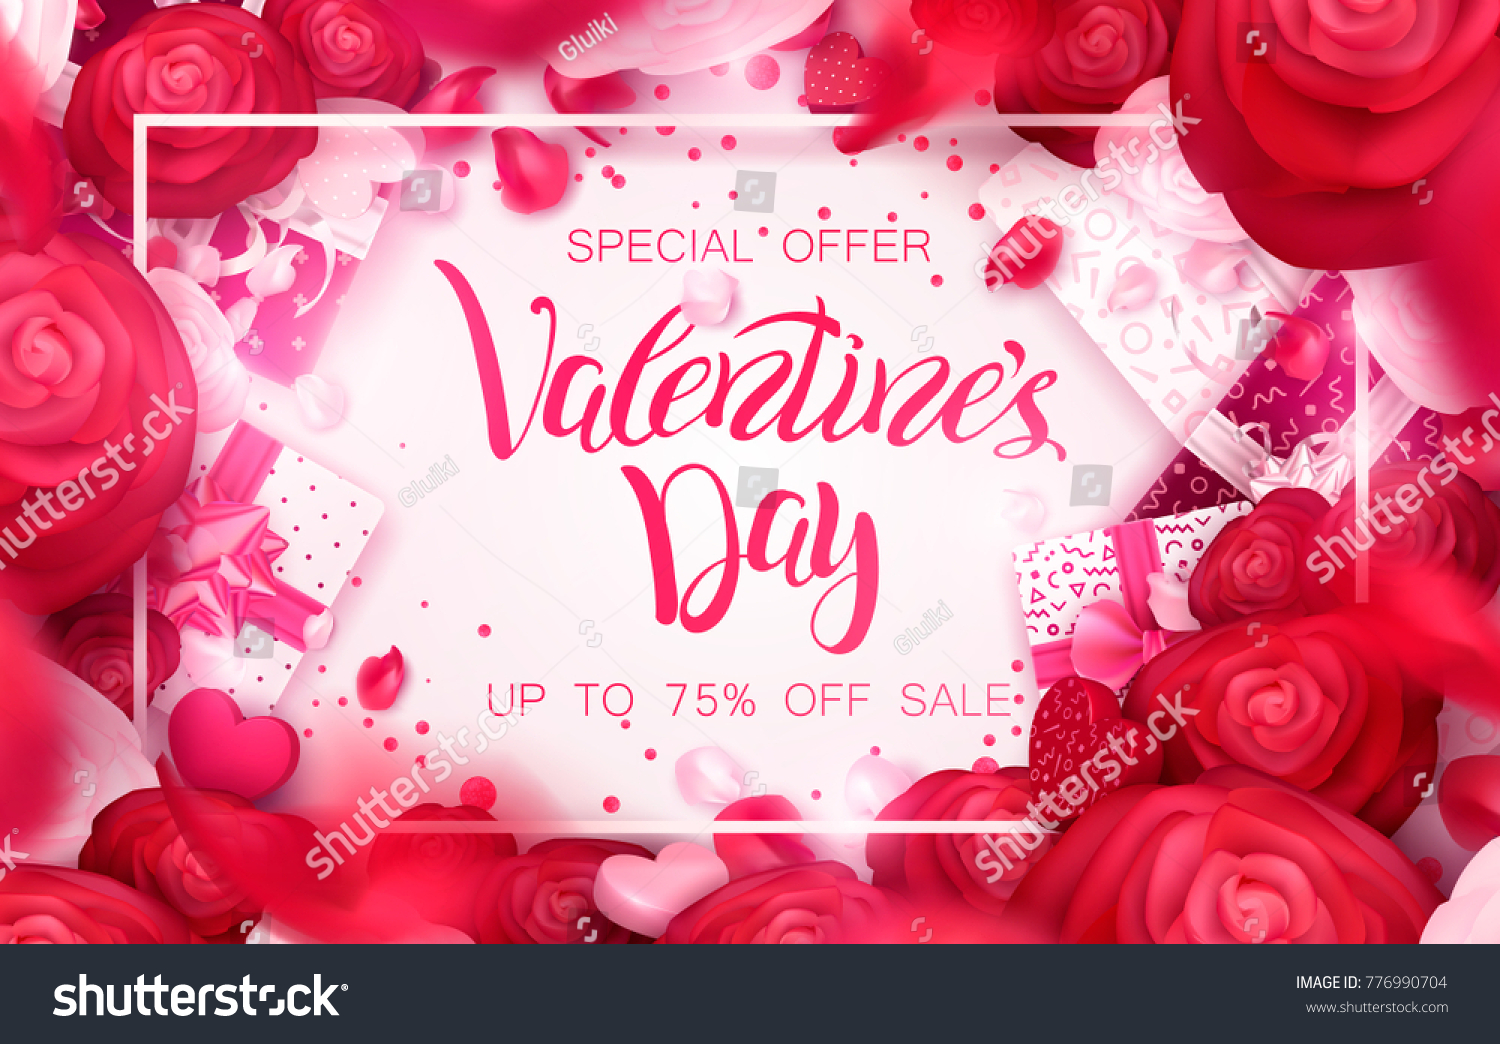 Happy Holidays Valentines Day 14 February Image Vectorielle De Stock